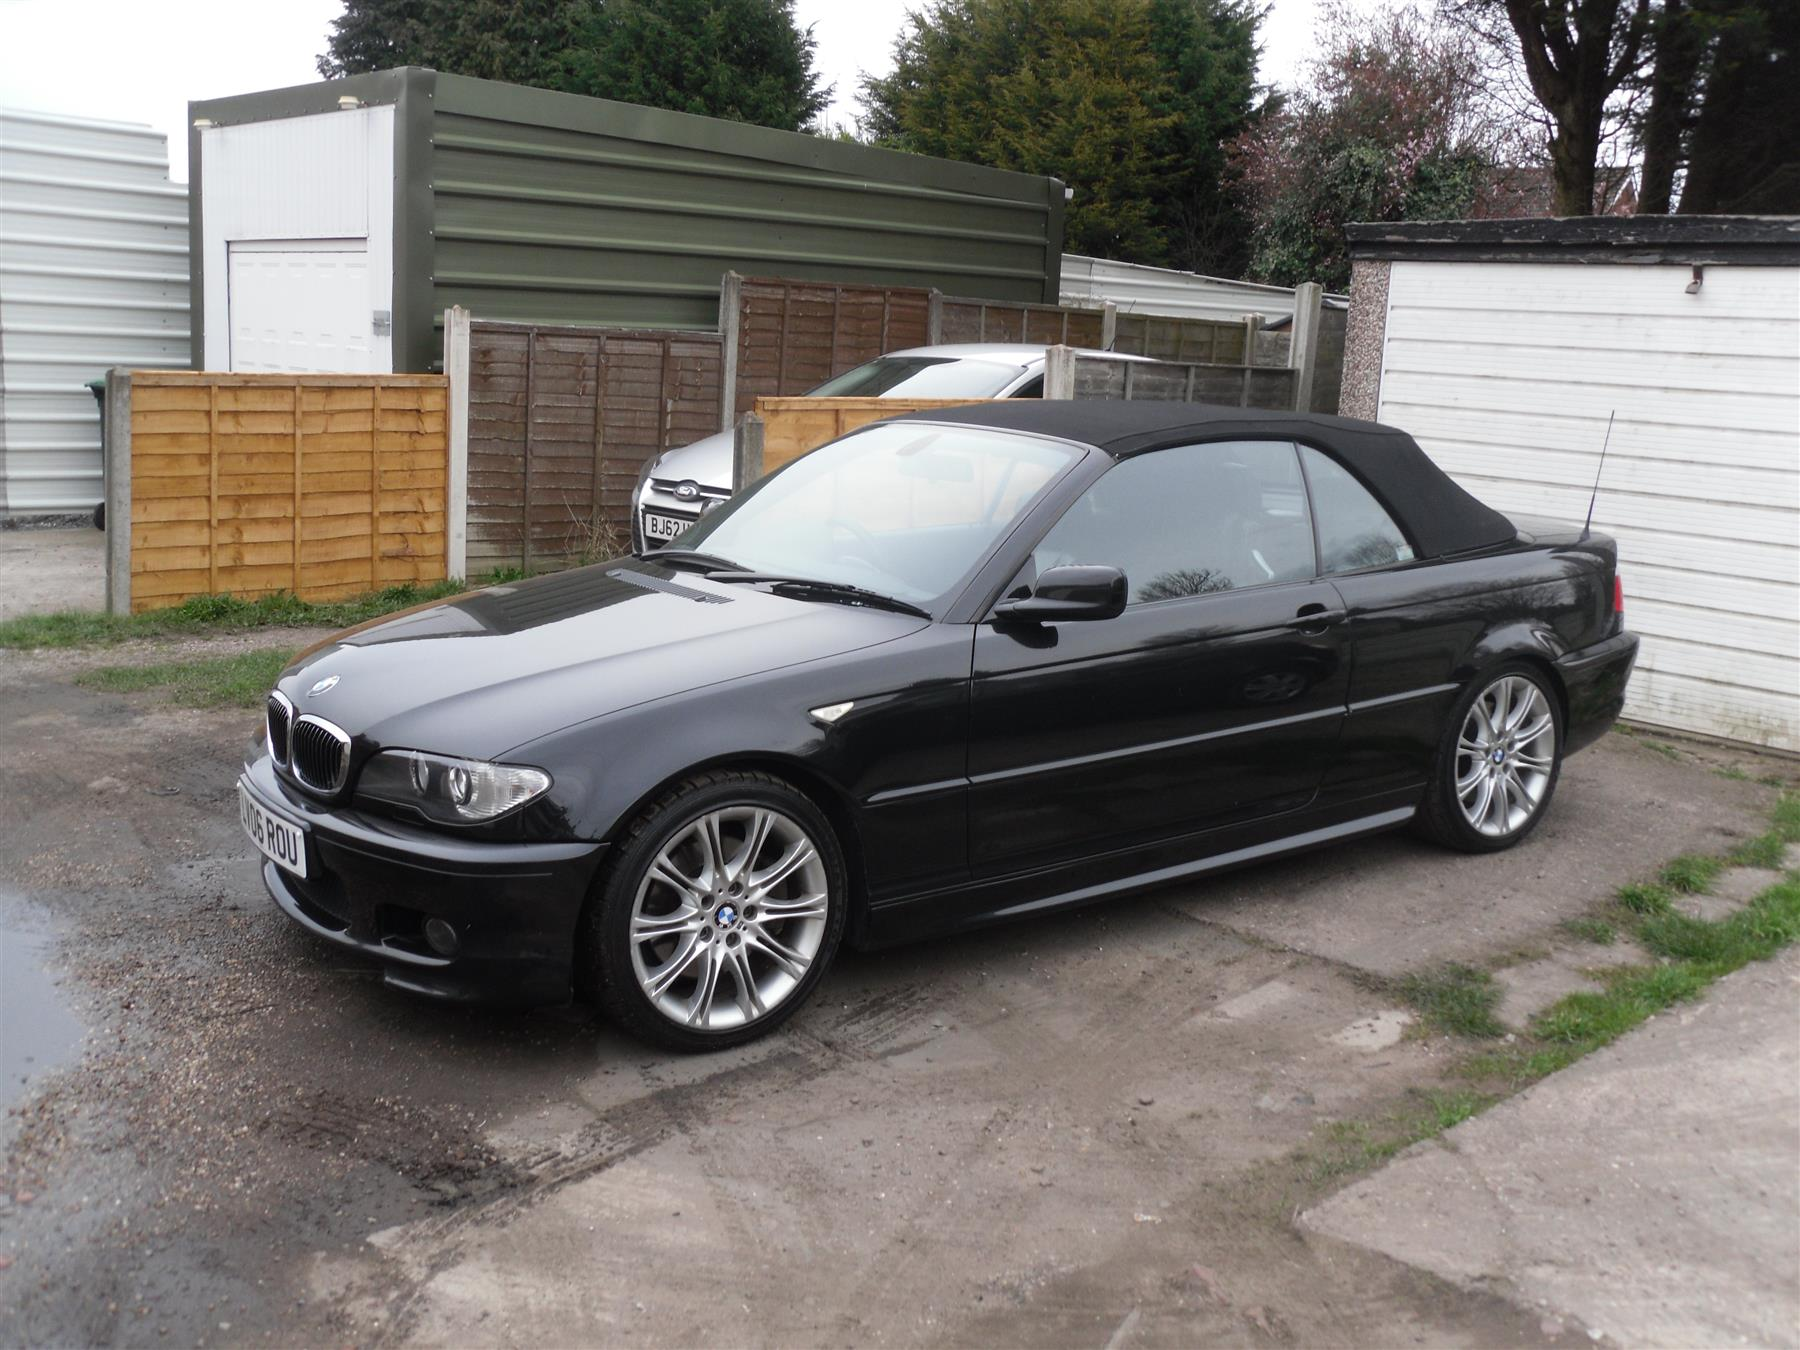 BMW 3 series 330Ci 2006 photo - 8